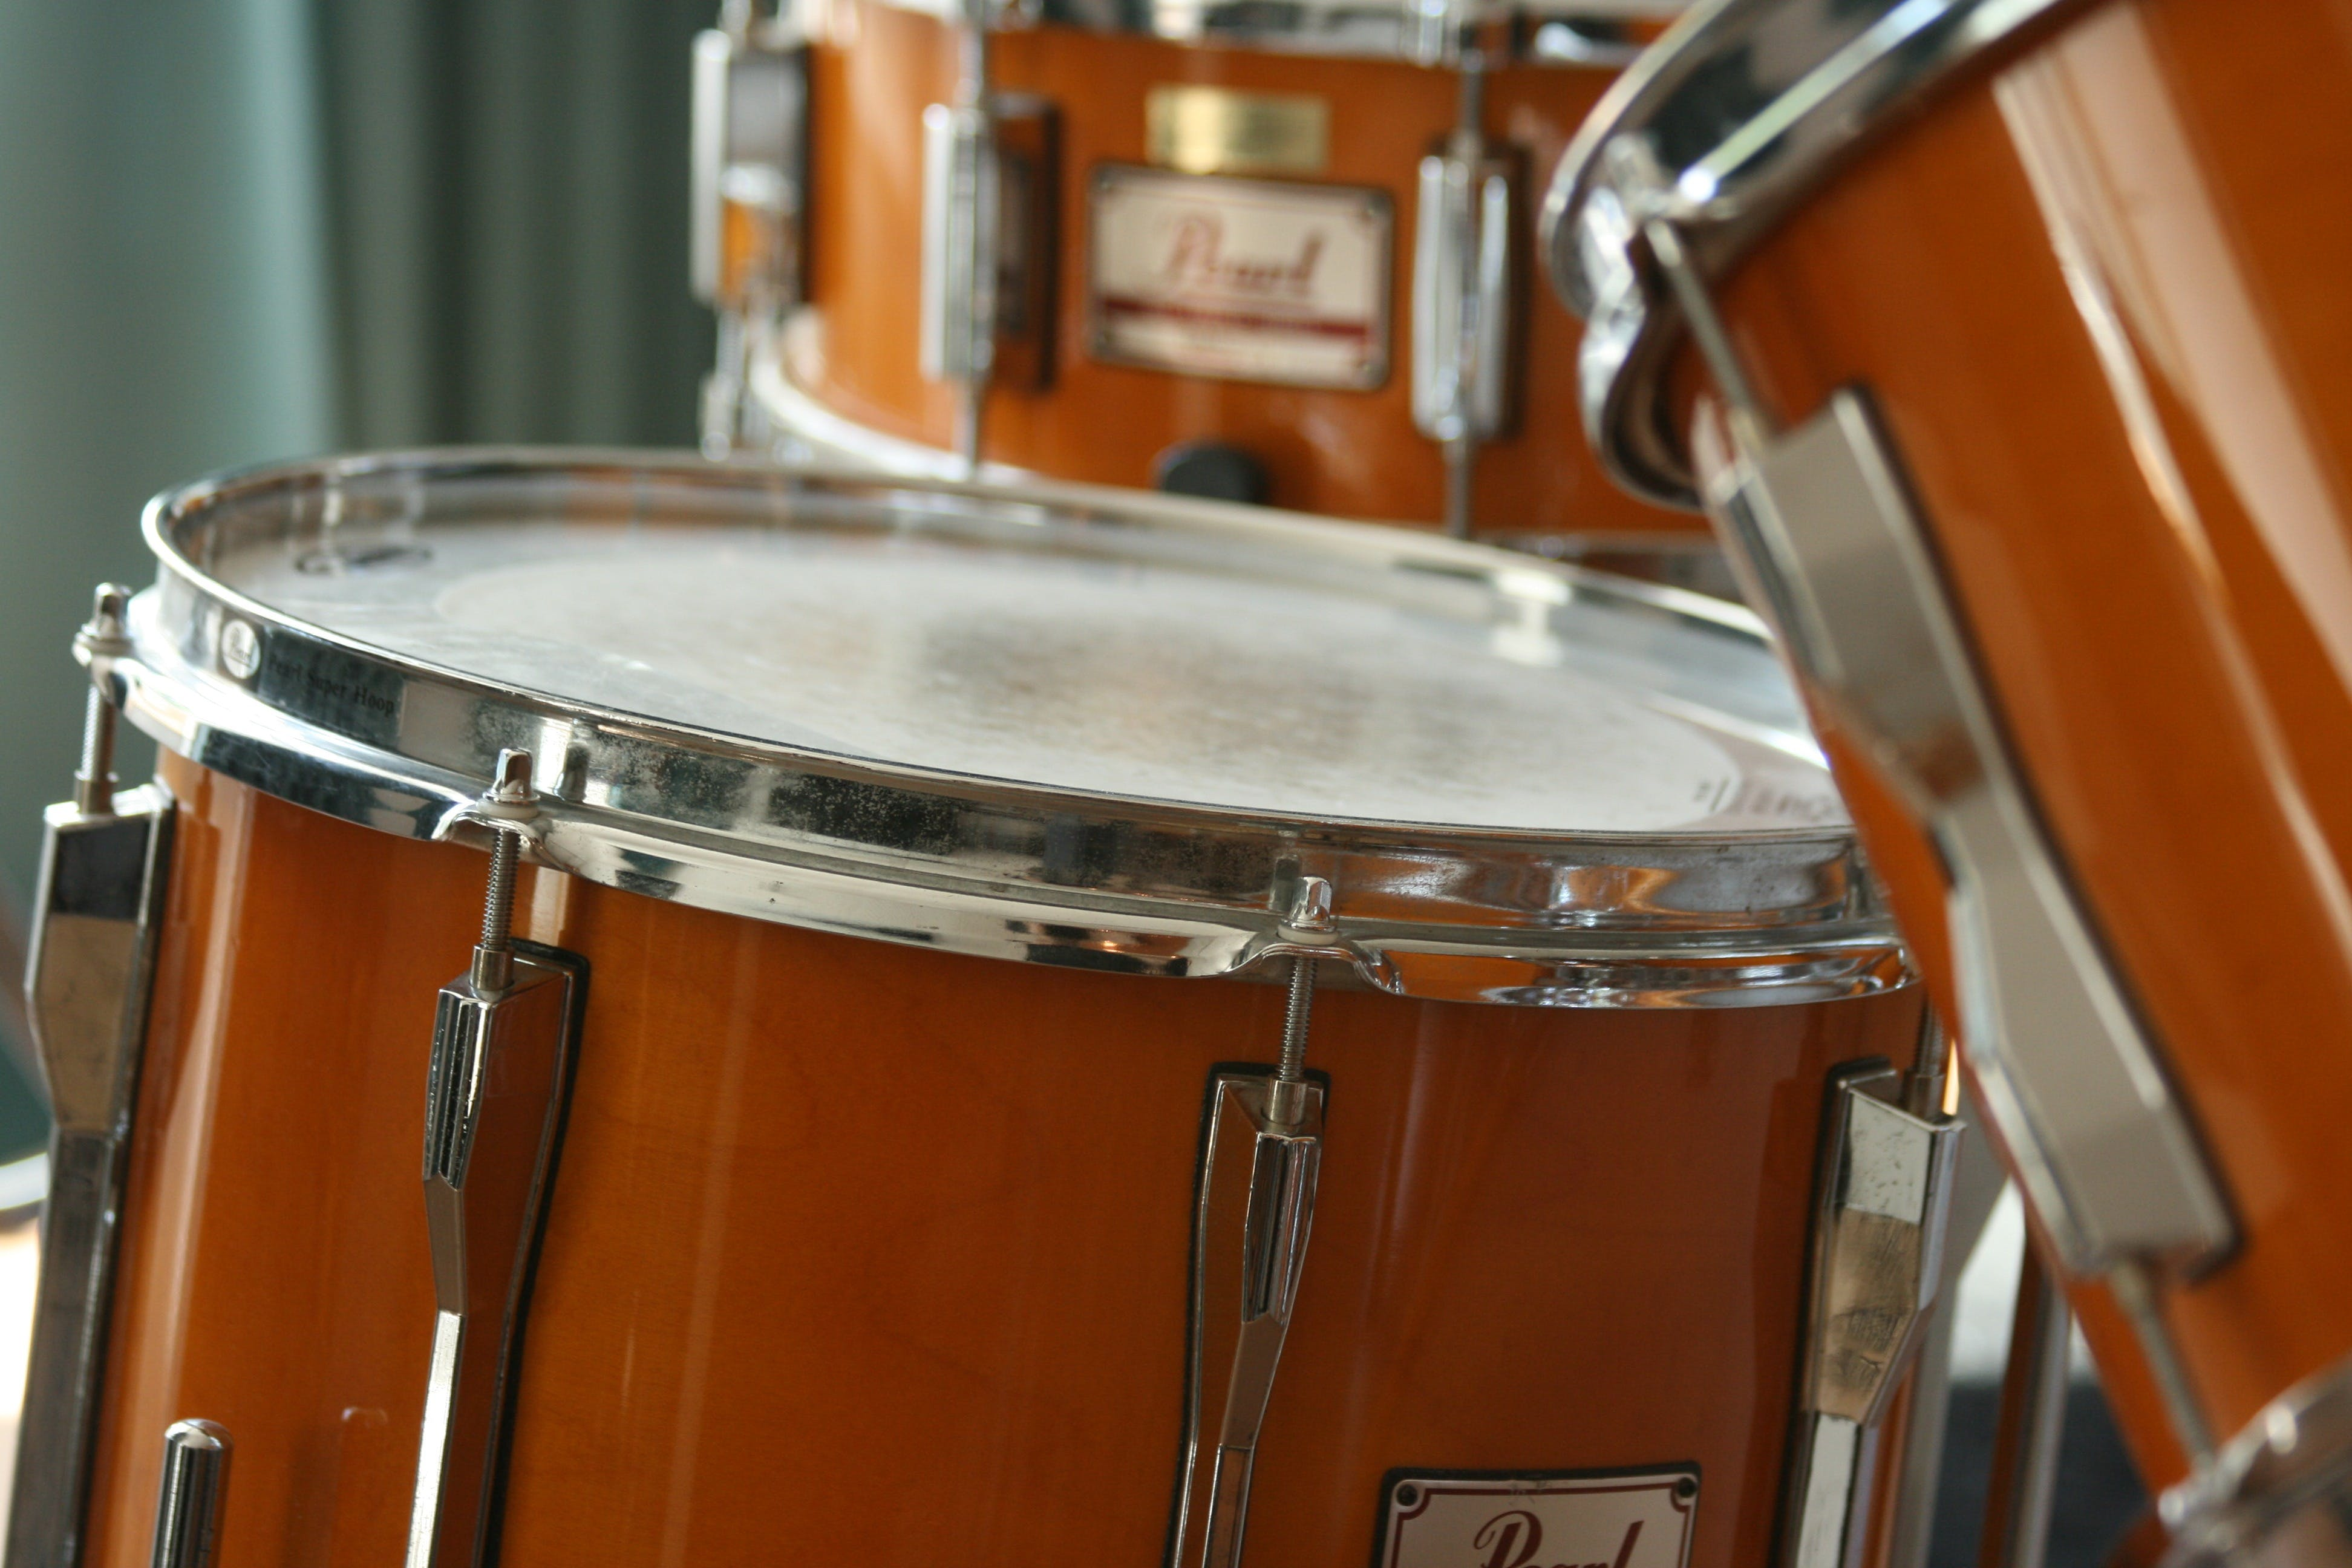 Pearl Orange Drumset in Tilt Shift Lens